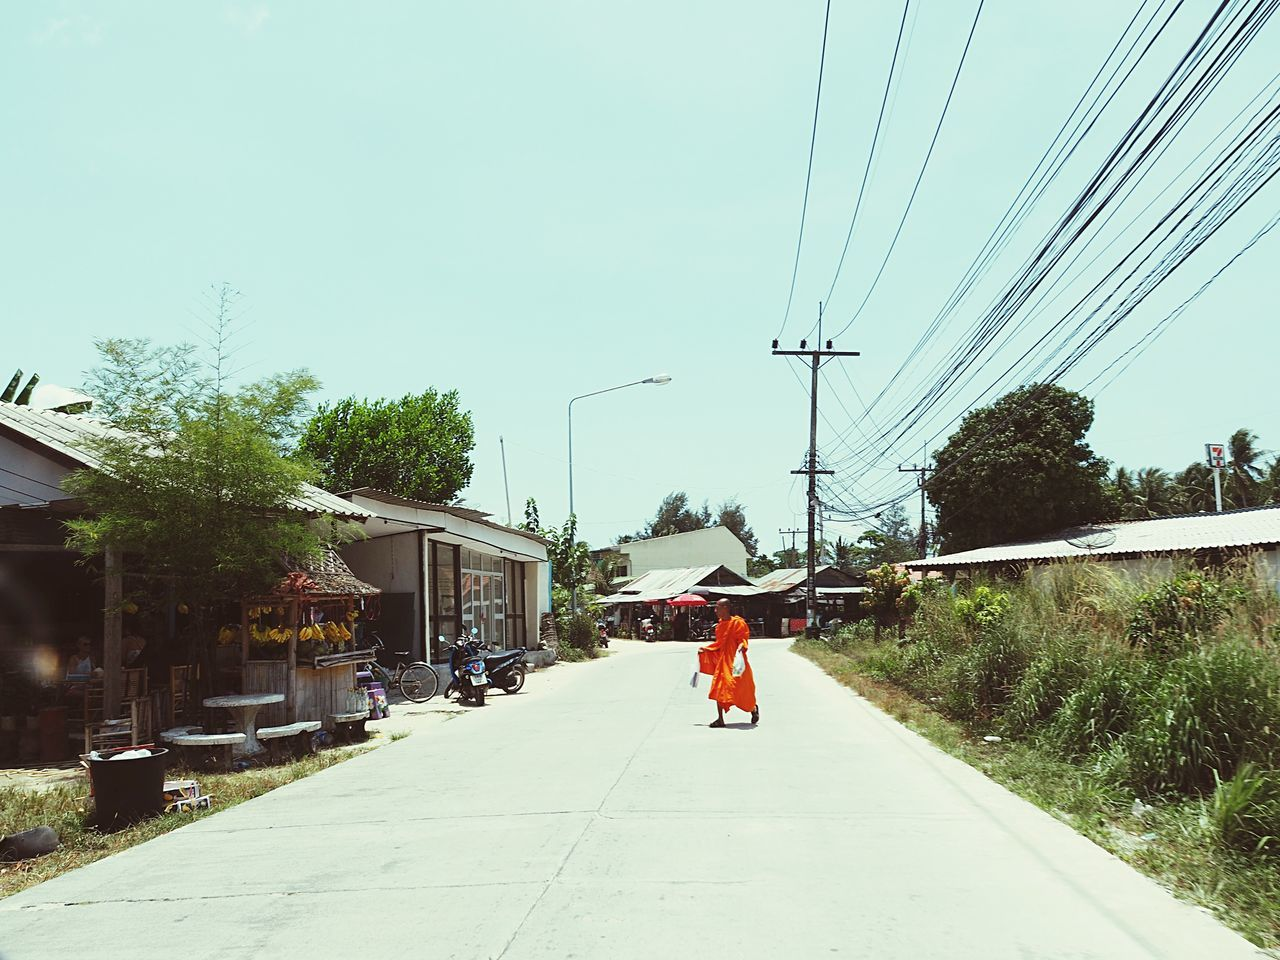 Buddhism Monk  Thailand Koh Phangan Wires In The Sky Wires Orange Color Buddhist Monks Buddhist